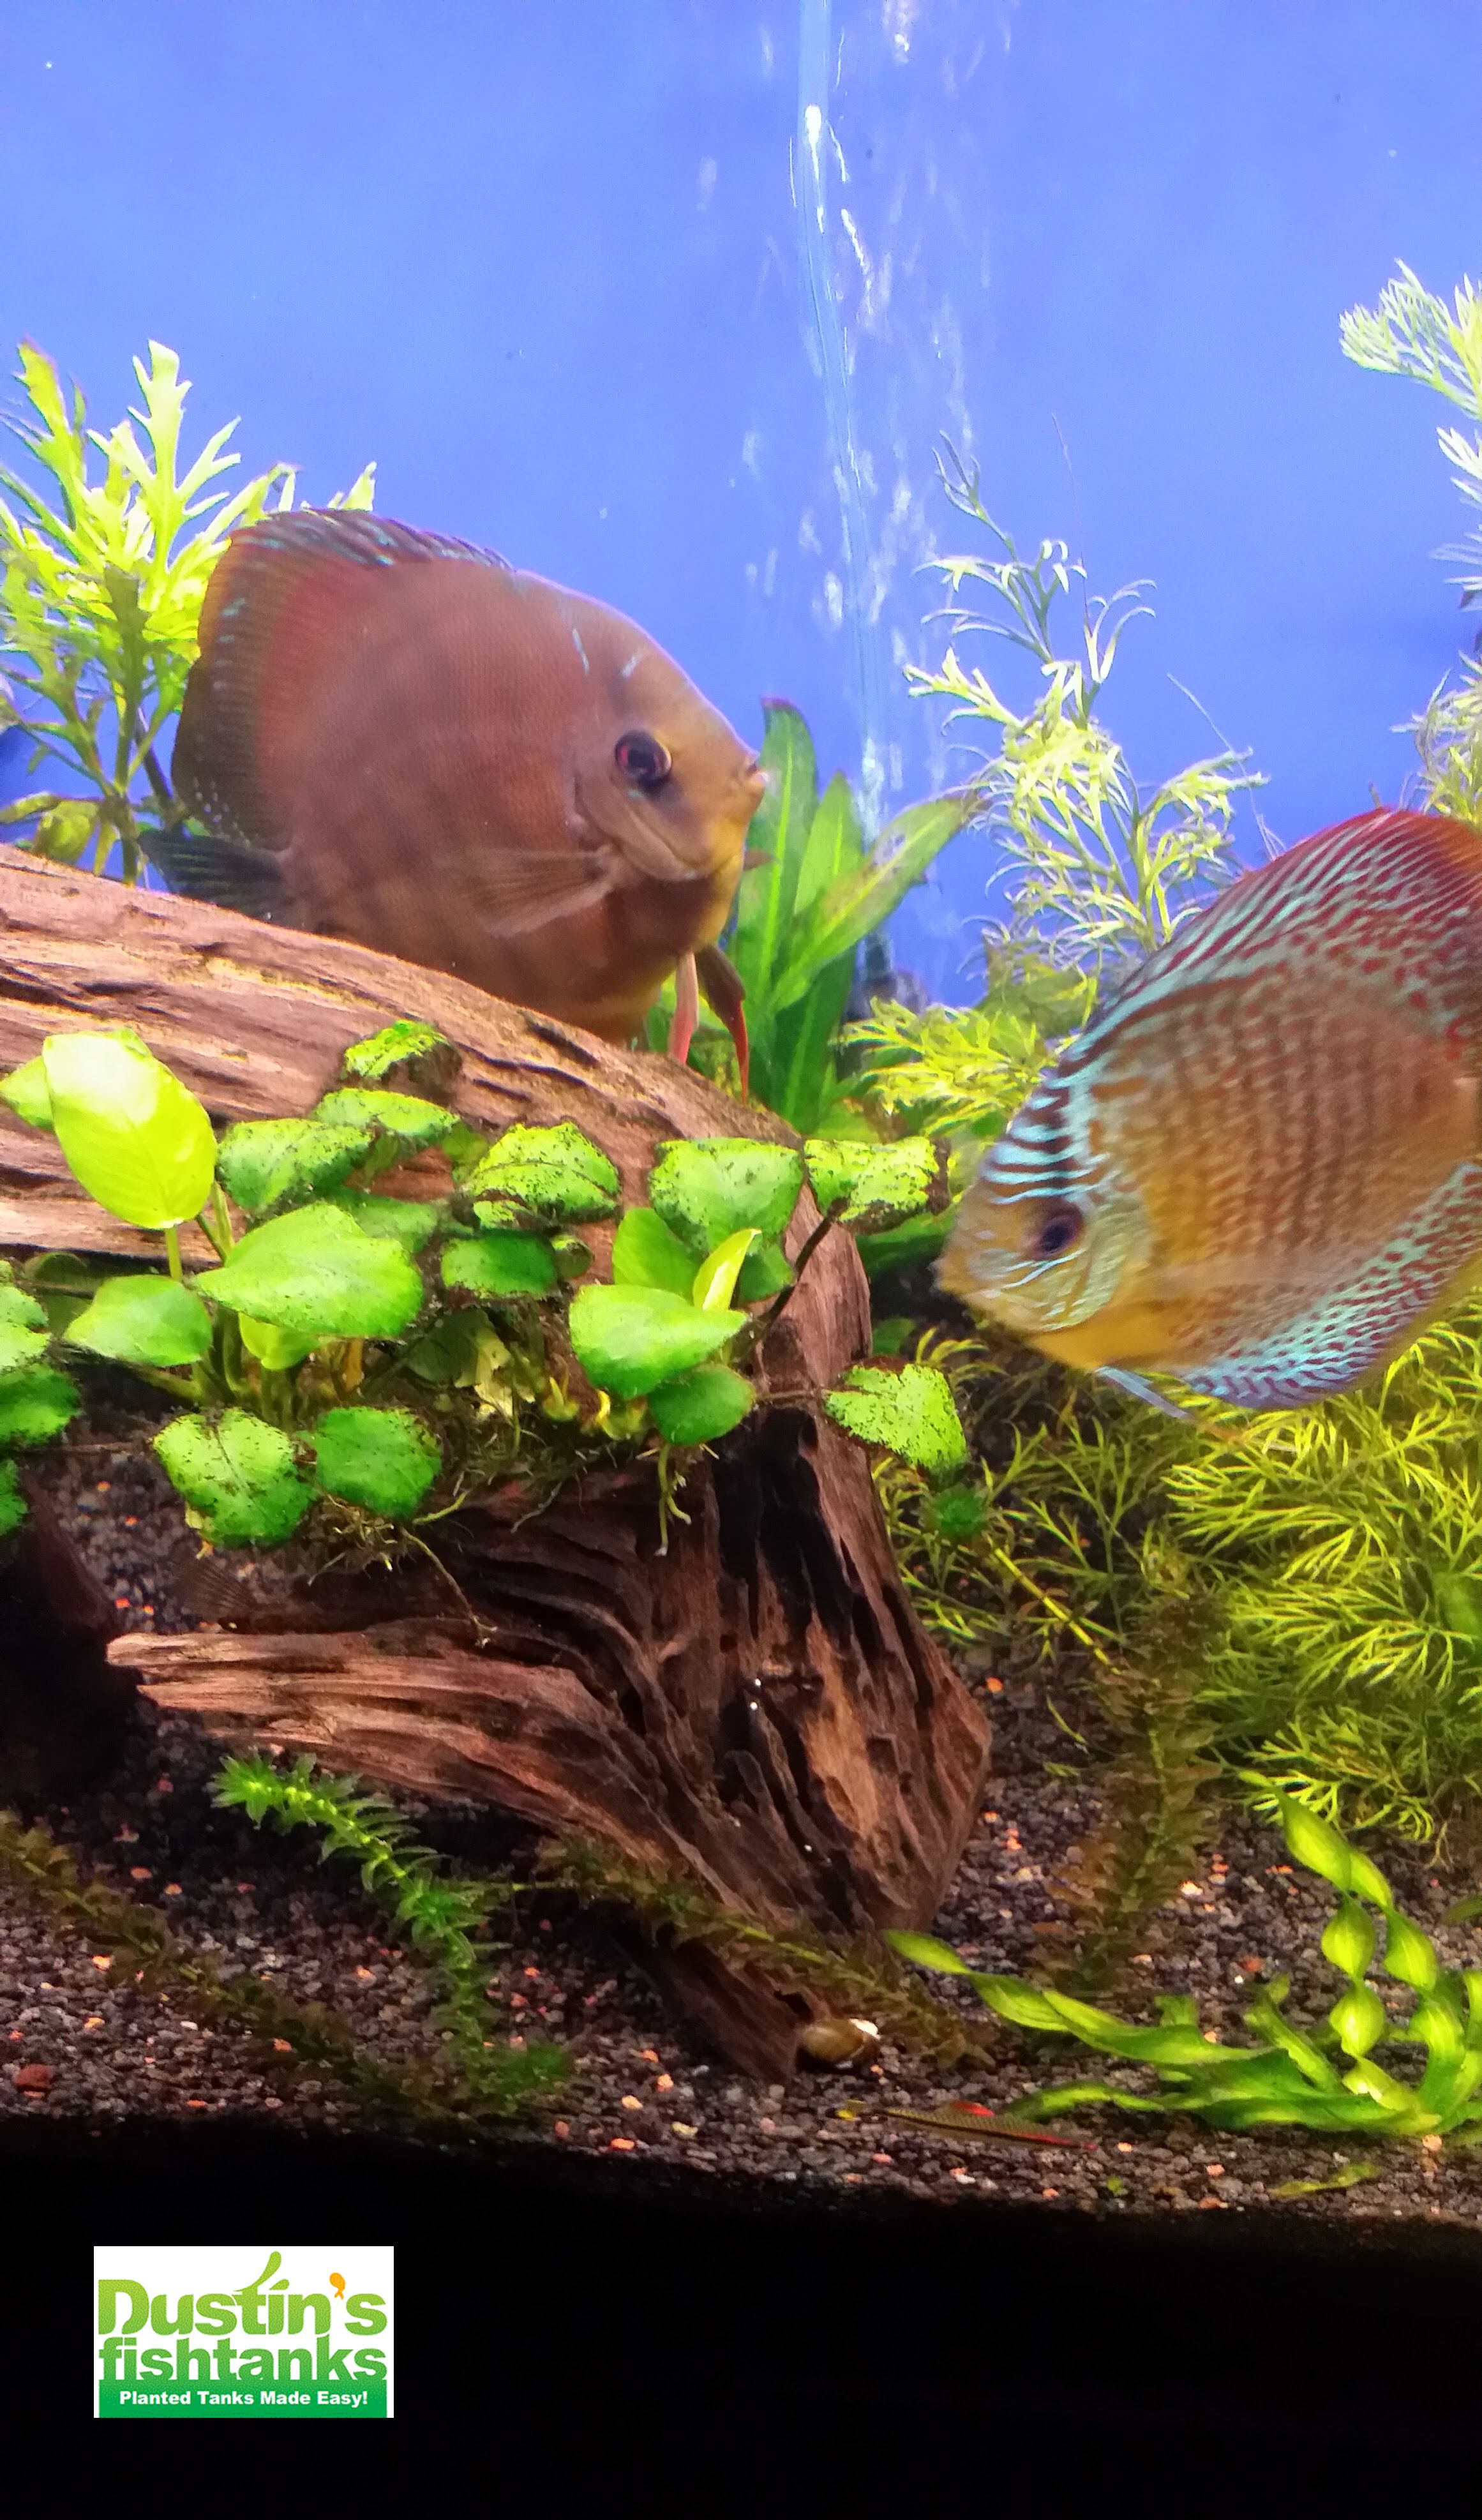 Get your Aquarium Green for 50% Off (Half Off) Through April 30th on Dustin's Fishtanks http://dustinsfishtanks.com/aquarium-plants/aquarium-plants-for-beginners/